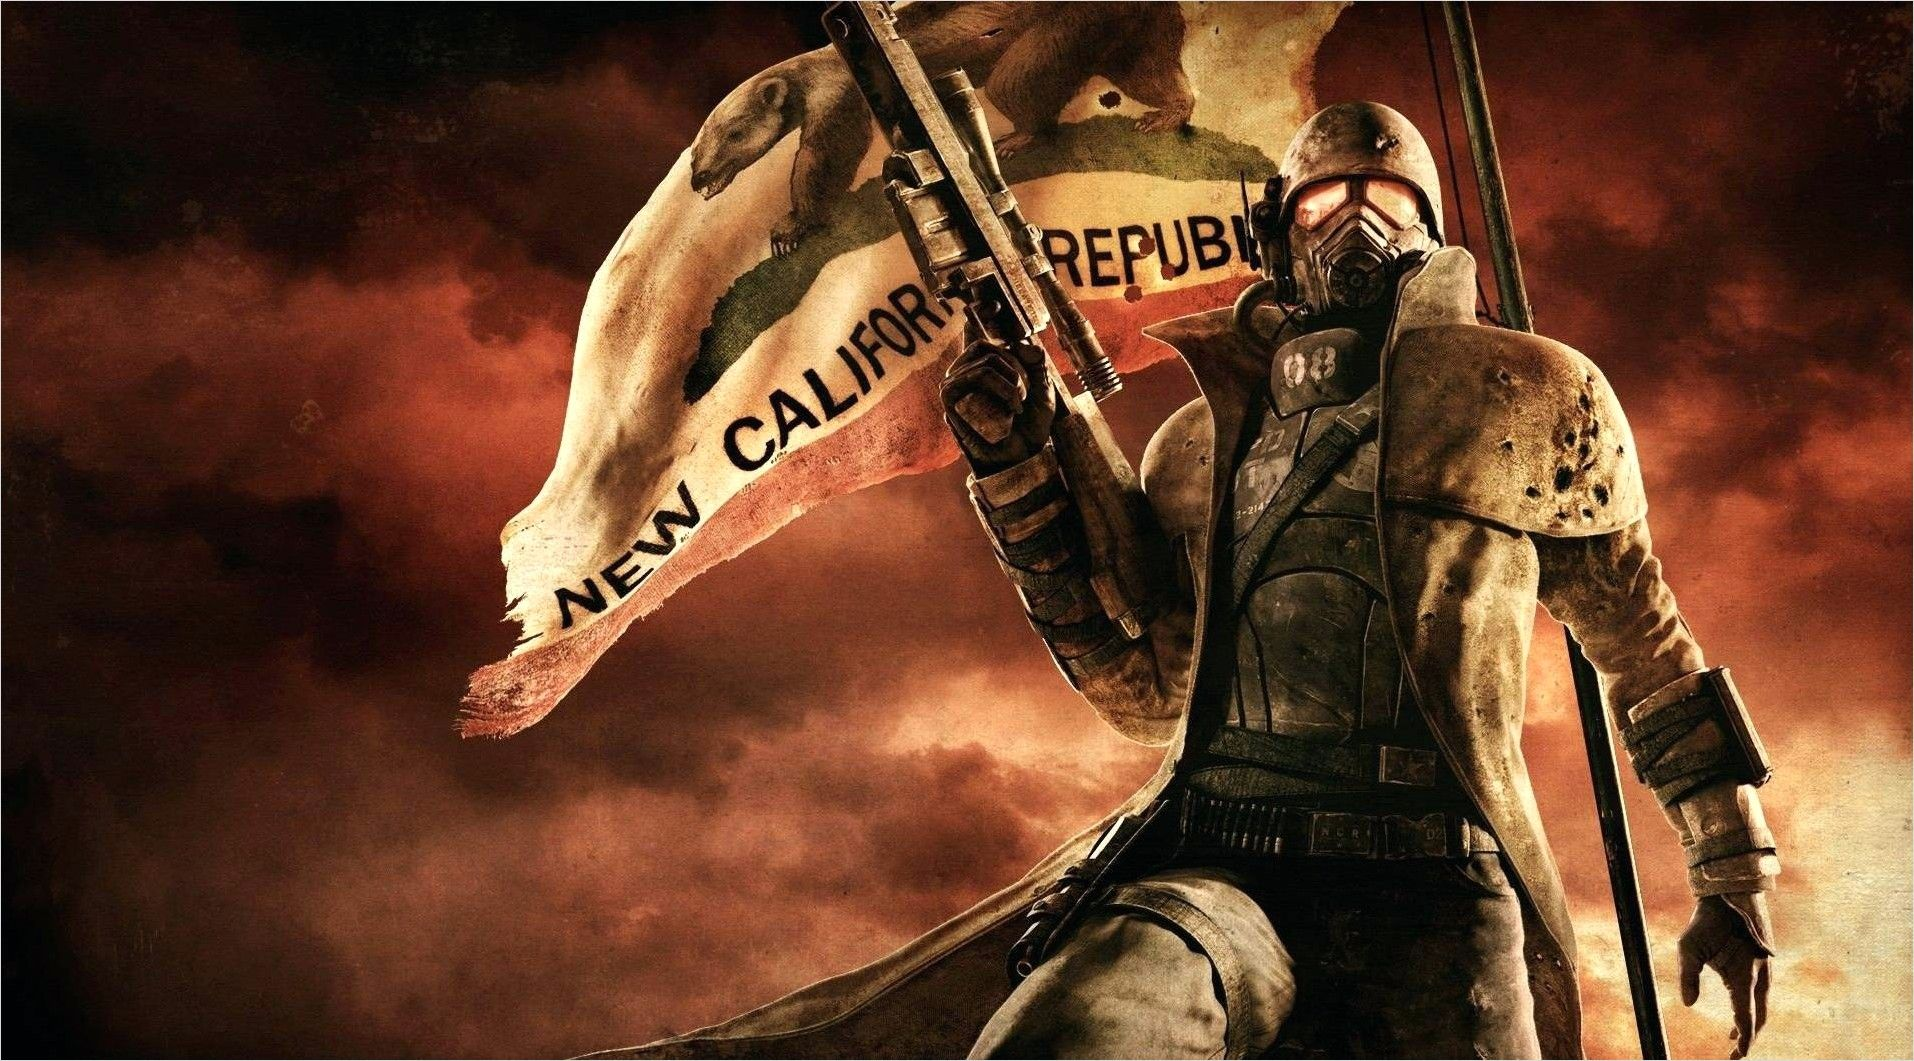 4k New Vegas Wallpaper In 2020 Fallout New Vegas Fallout Wallpaper Fallout New Vegas Ncr